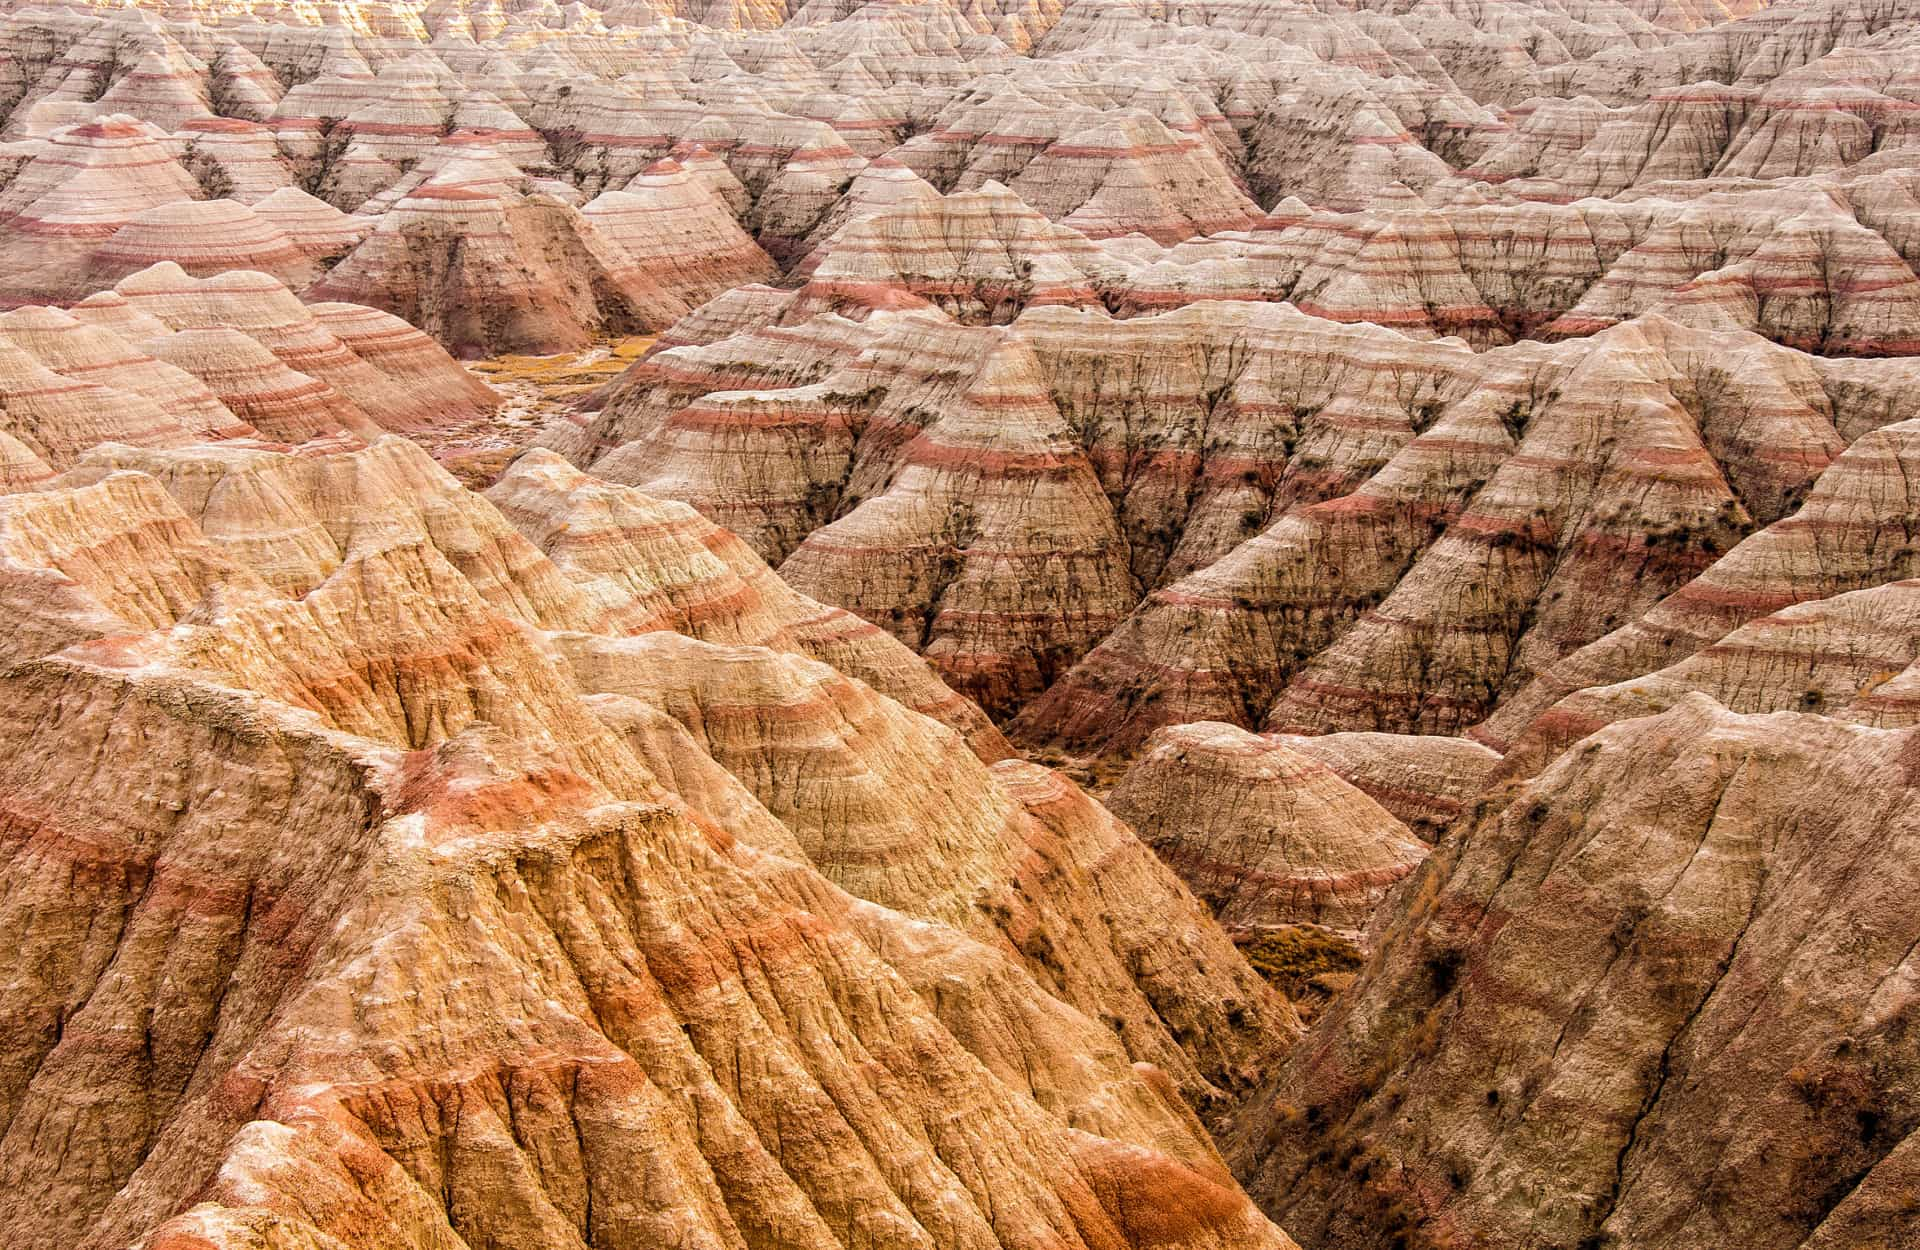 Mind-blowing photos of America's most surreal sights